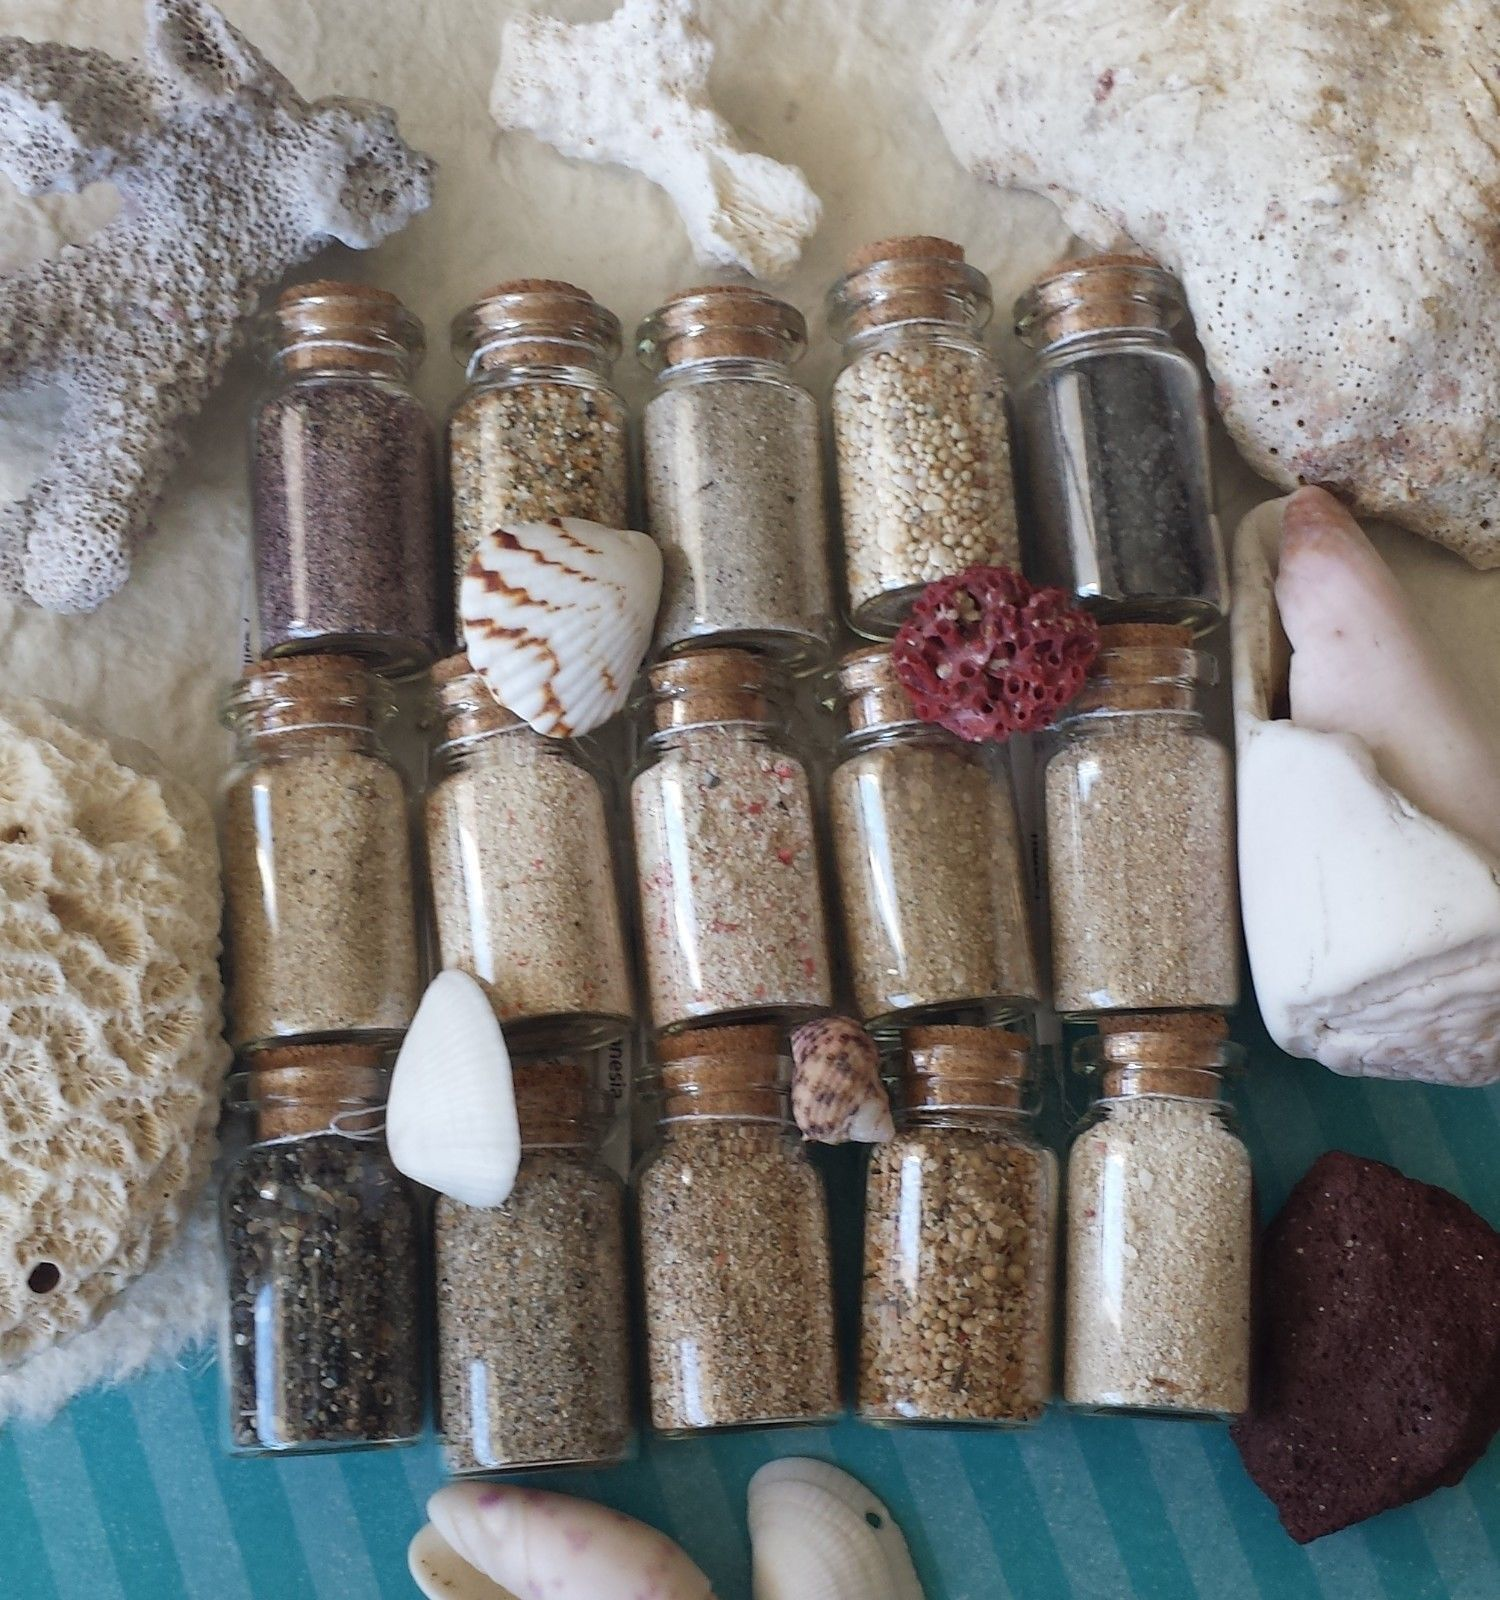 15 Beach Sand Collection Ebay Includes Angel Island Pink Carmel By The Sea Dreamland Komodo Maldives Paradise